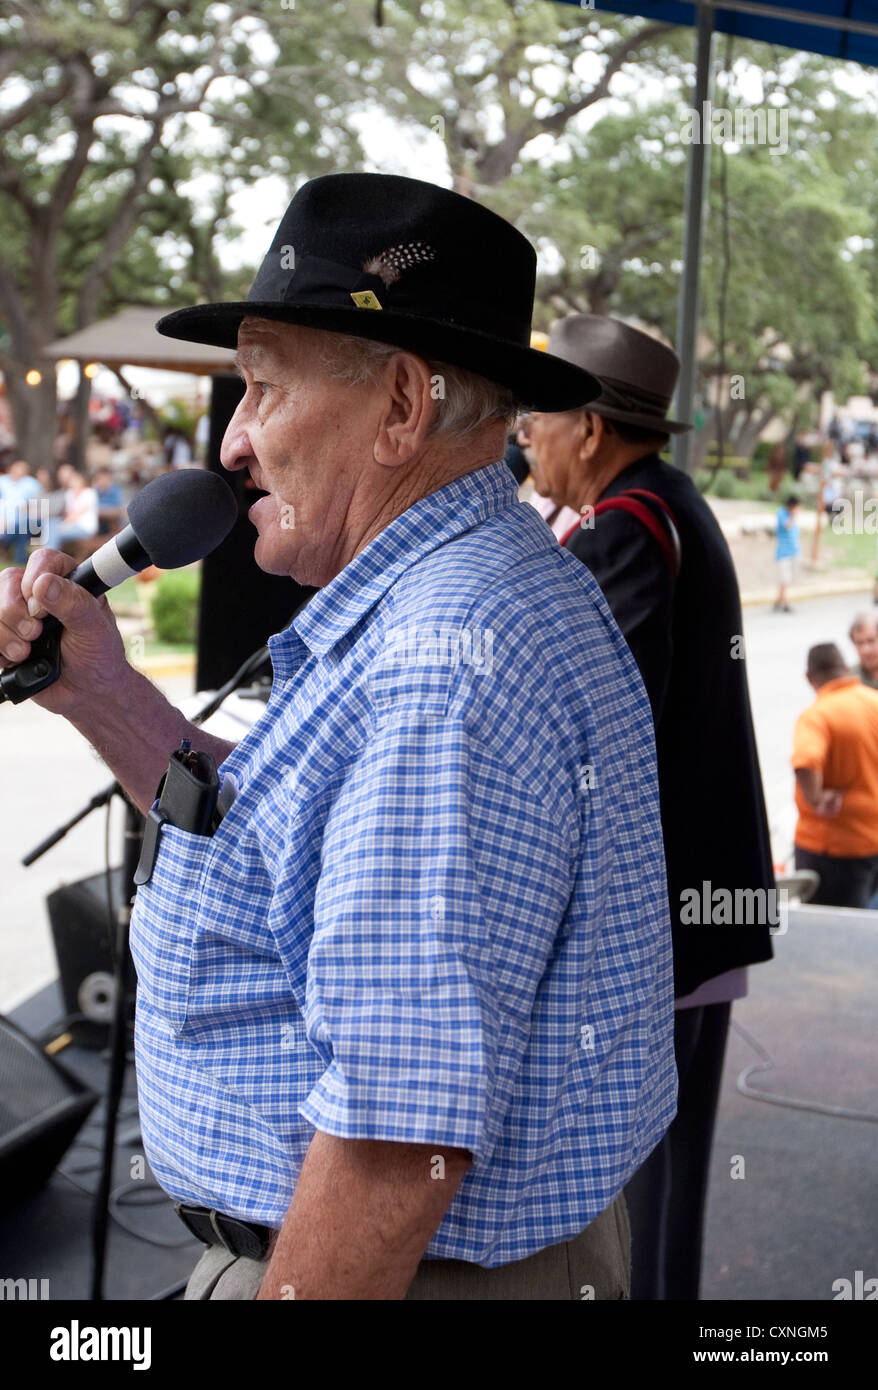 Mexican-American senior sings with a Tejano style music group at a church festival in Austin, Texas - Stock Image